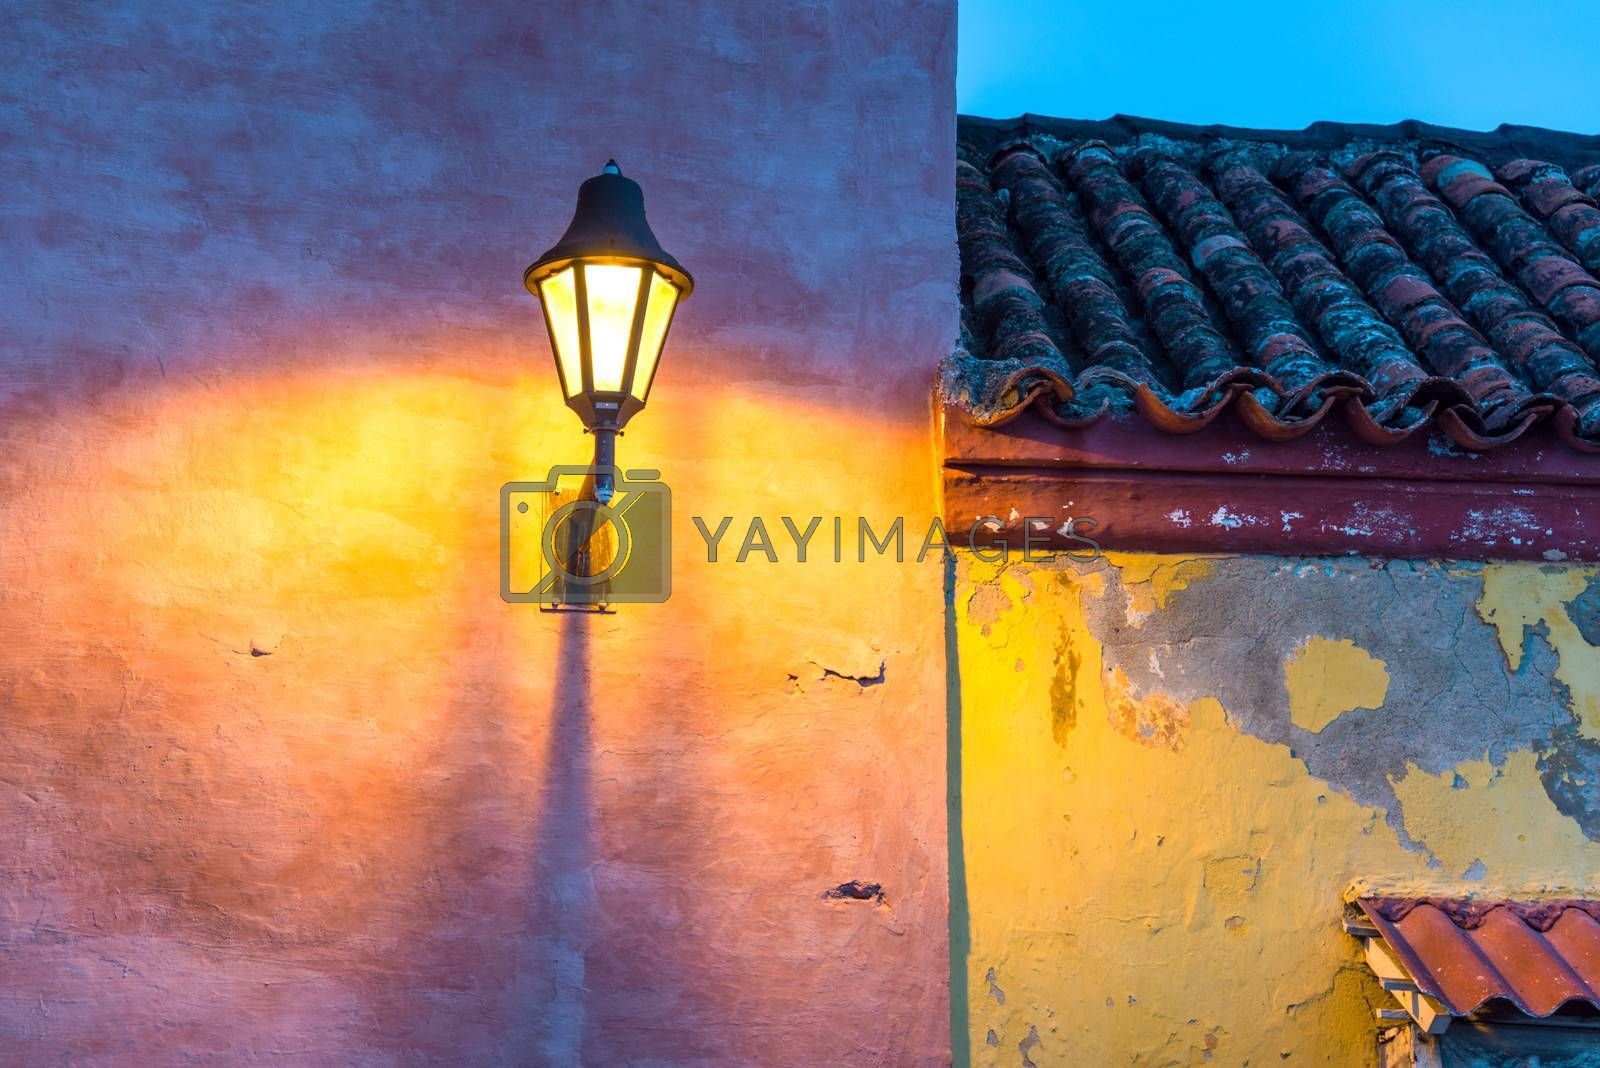 Old colonial buildings and a streetlight at night in the old town of Cartagena, Colombia